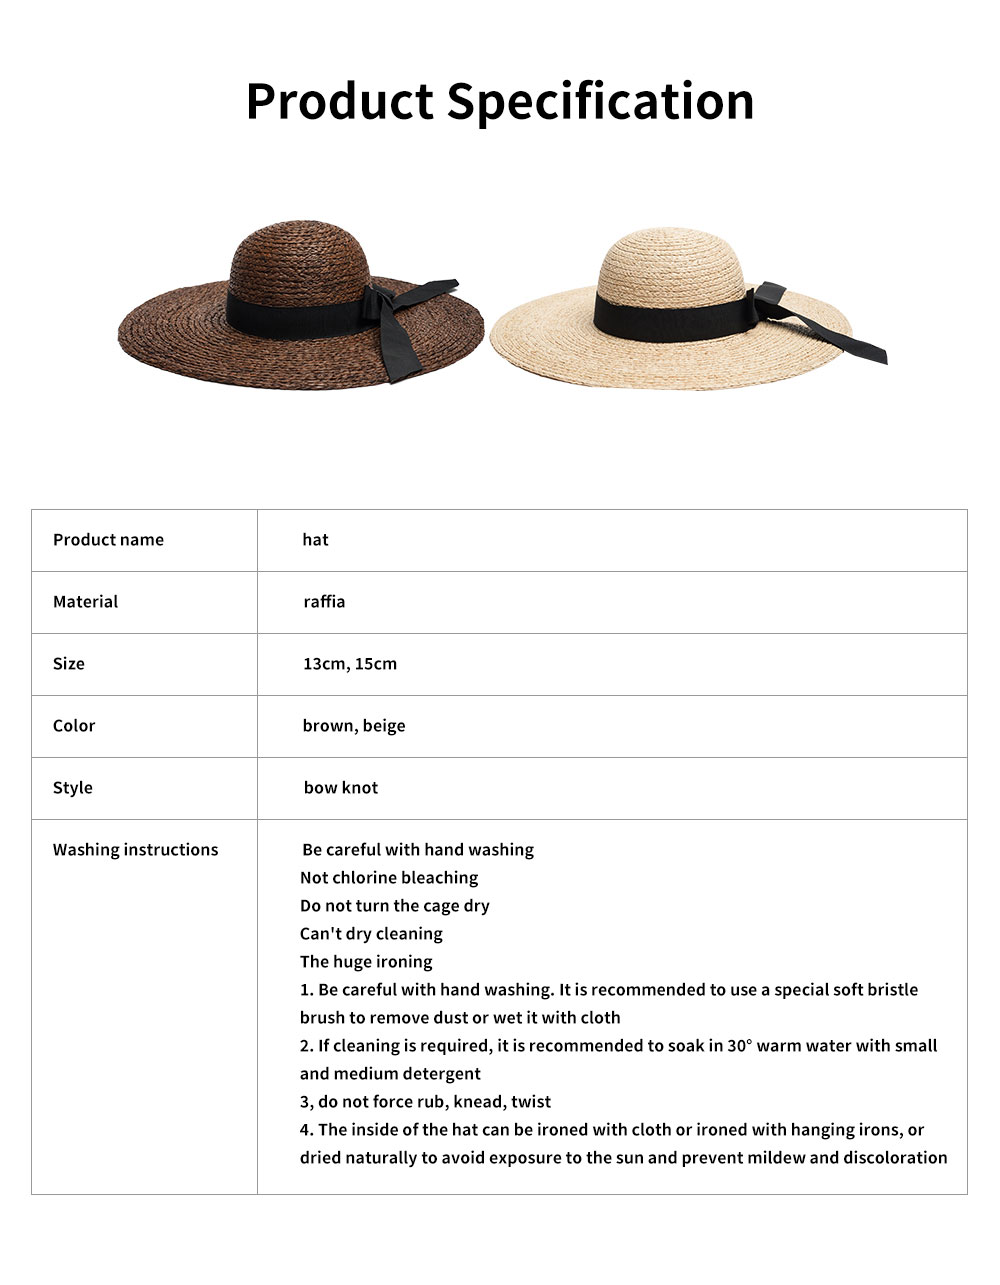 Lightweight Raffia Hat Breathable Topper Fashionable Bow Knot Sunhat Sunscreen for Women Beach Outside Activities Cap 7